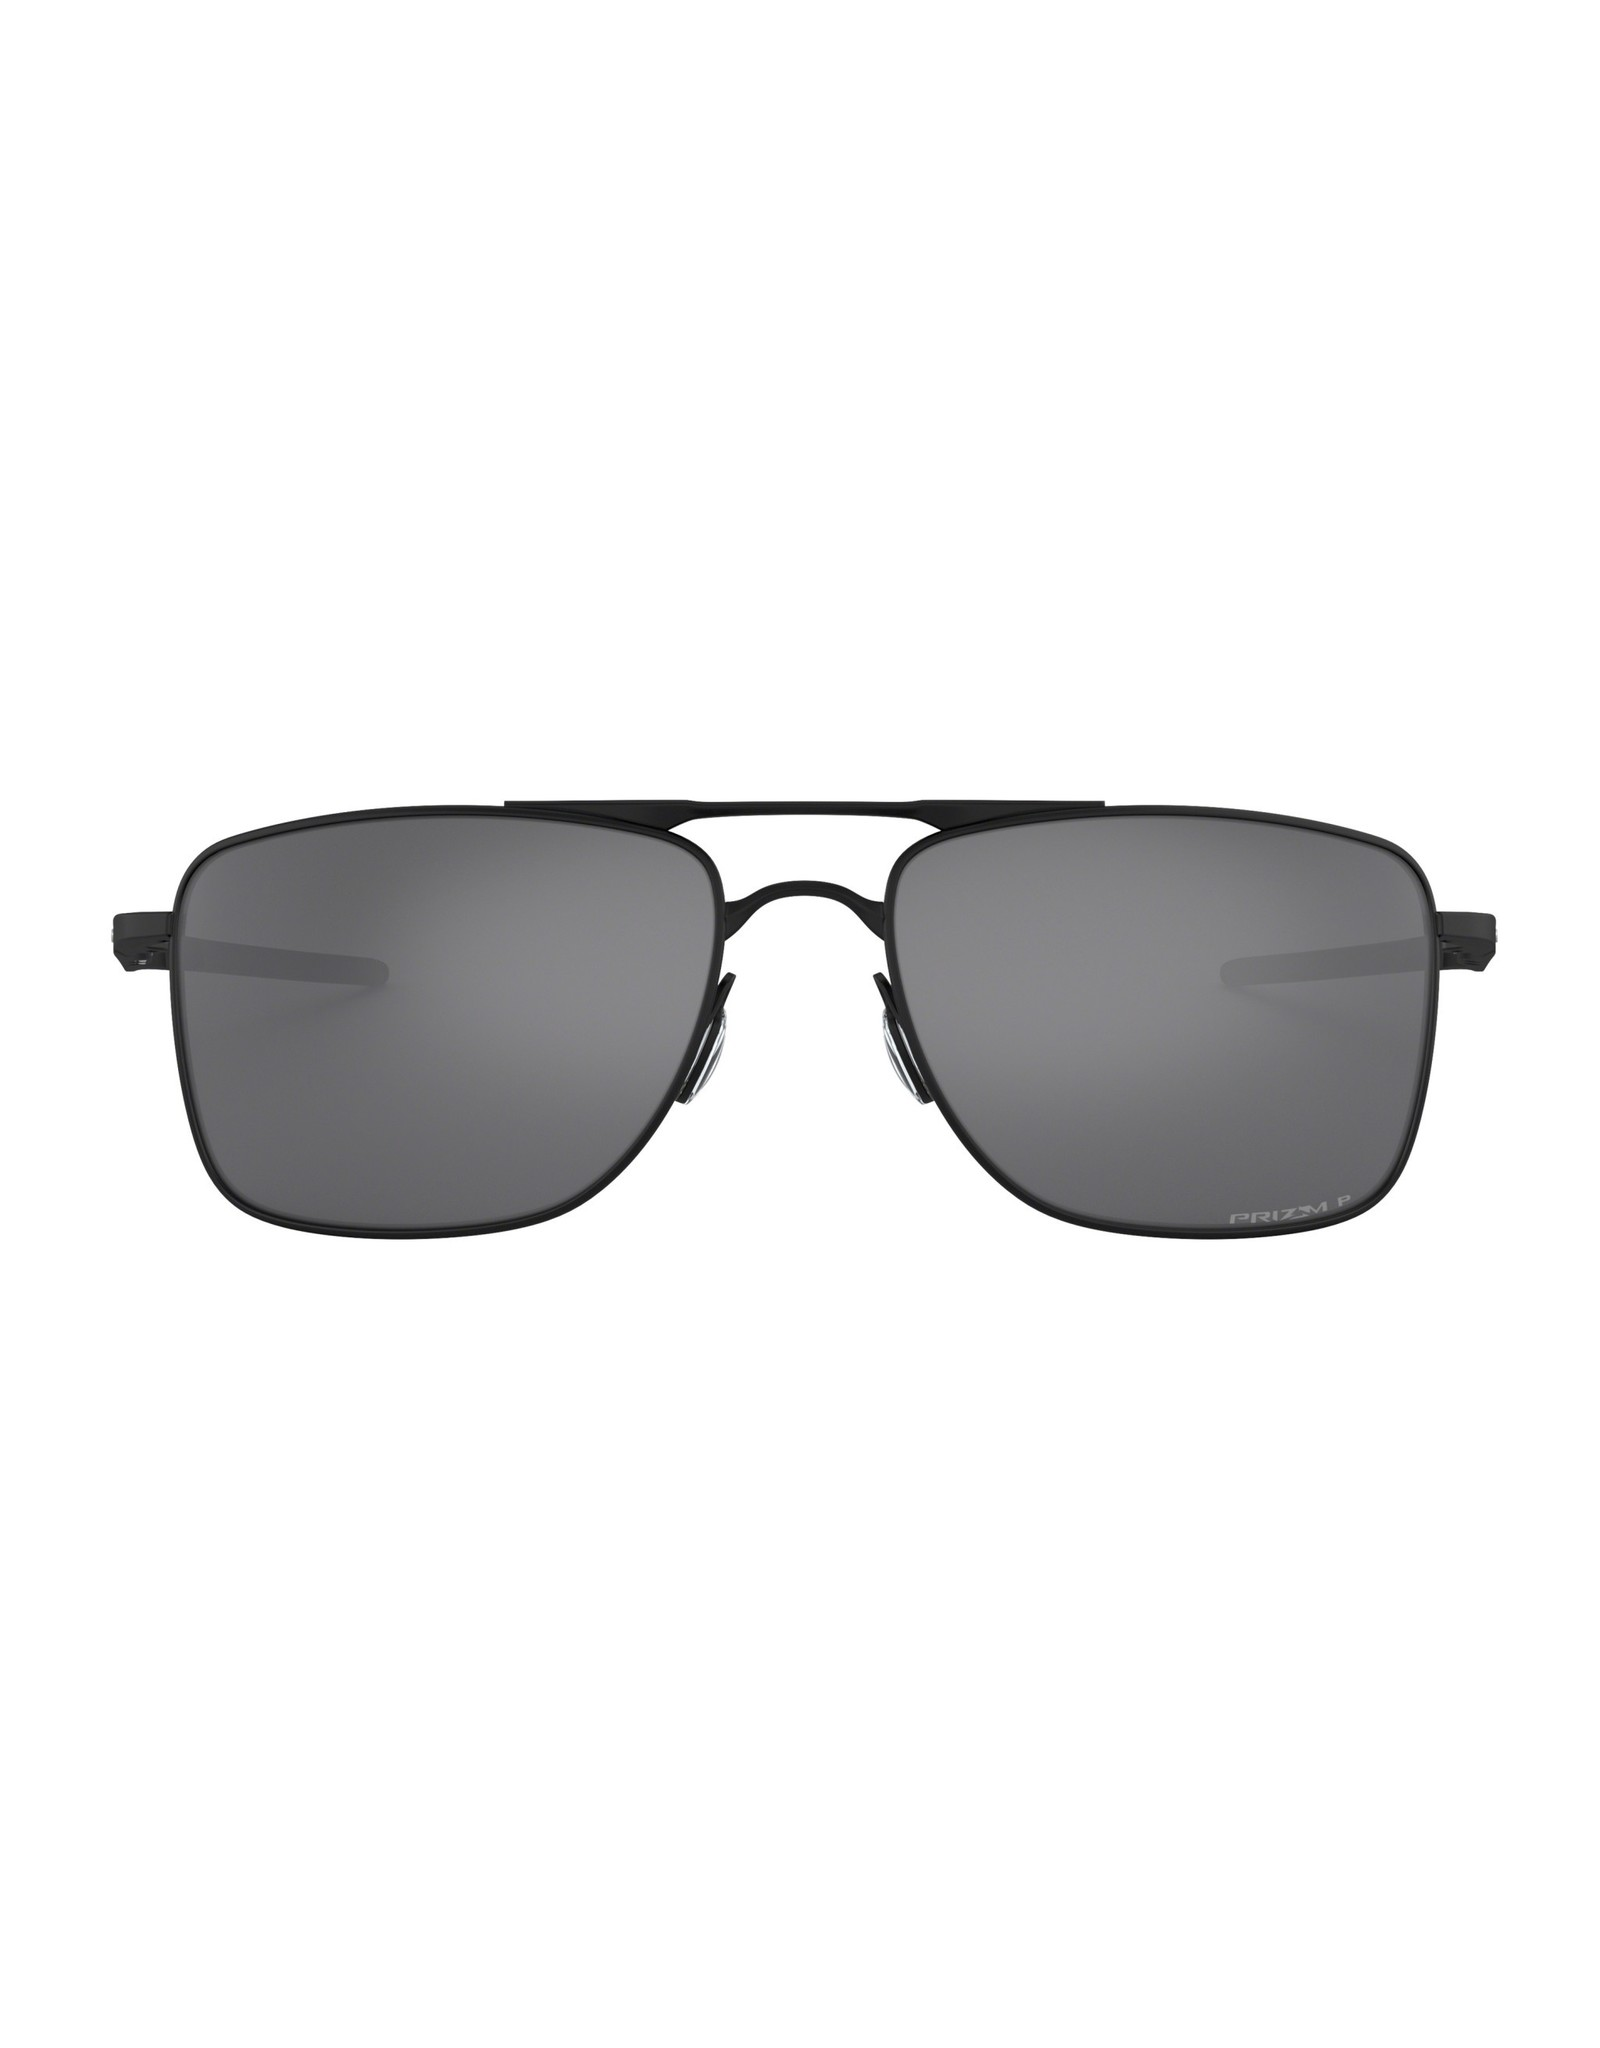 Oakley Oakley Gauge 8 Matte Black Sunglasses